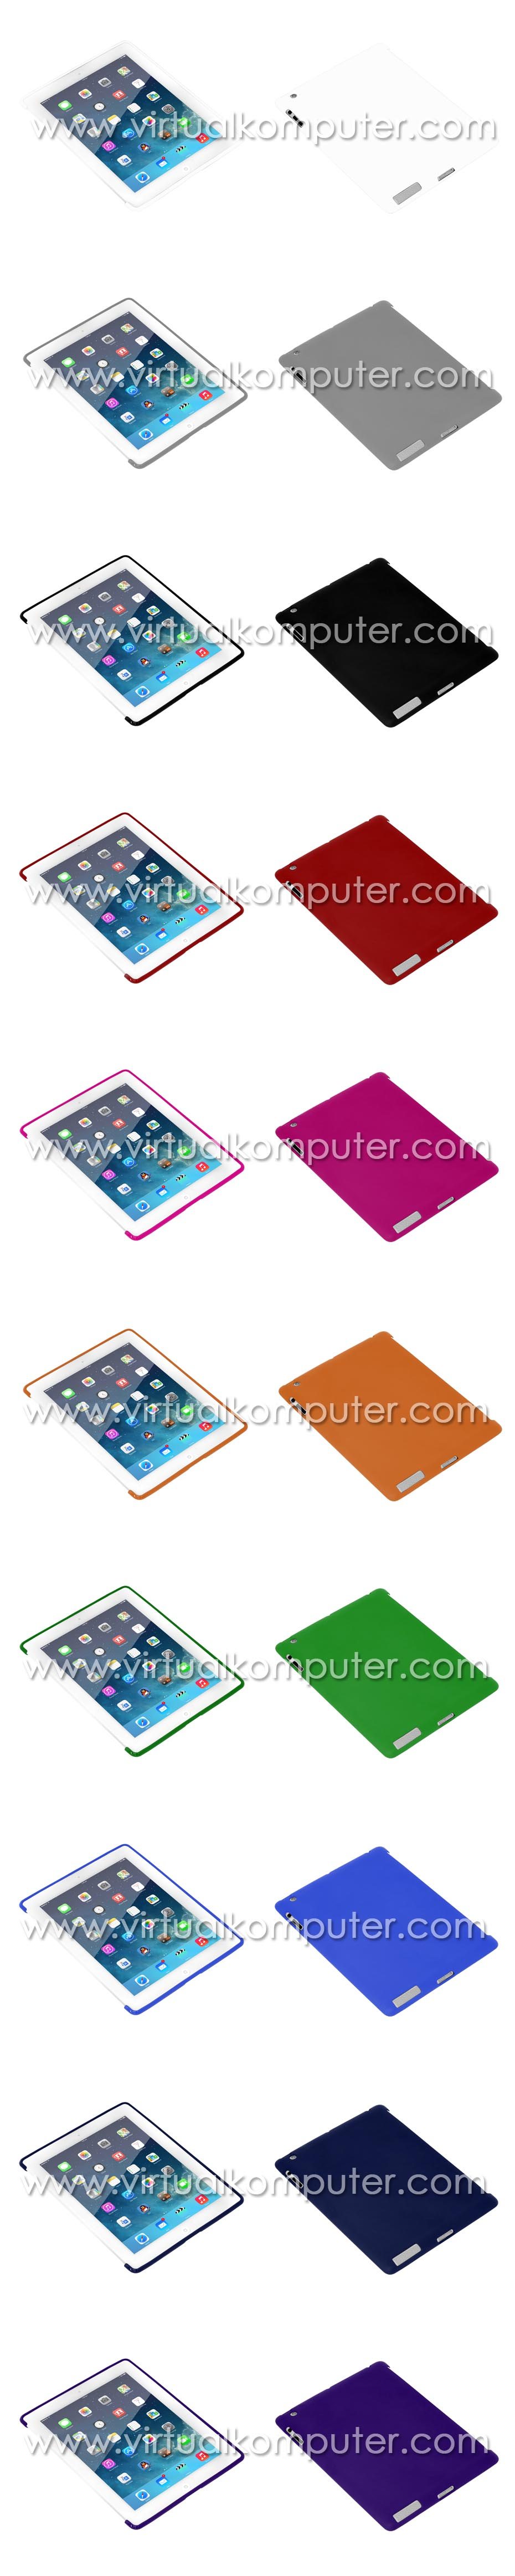 Softcase for iPad 2, 3, 4 Overview